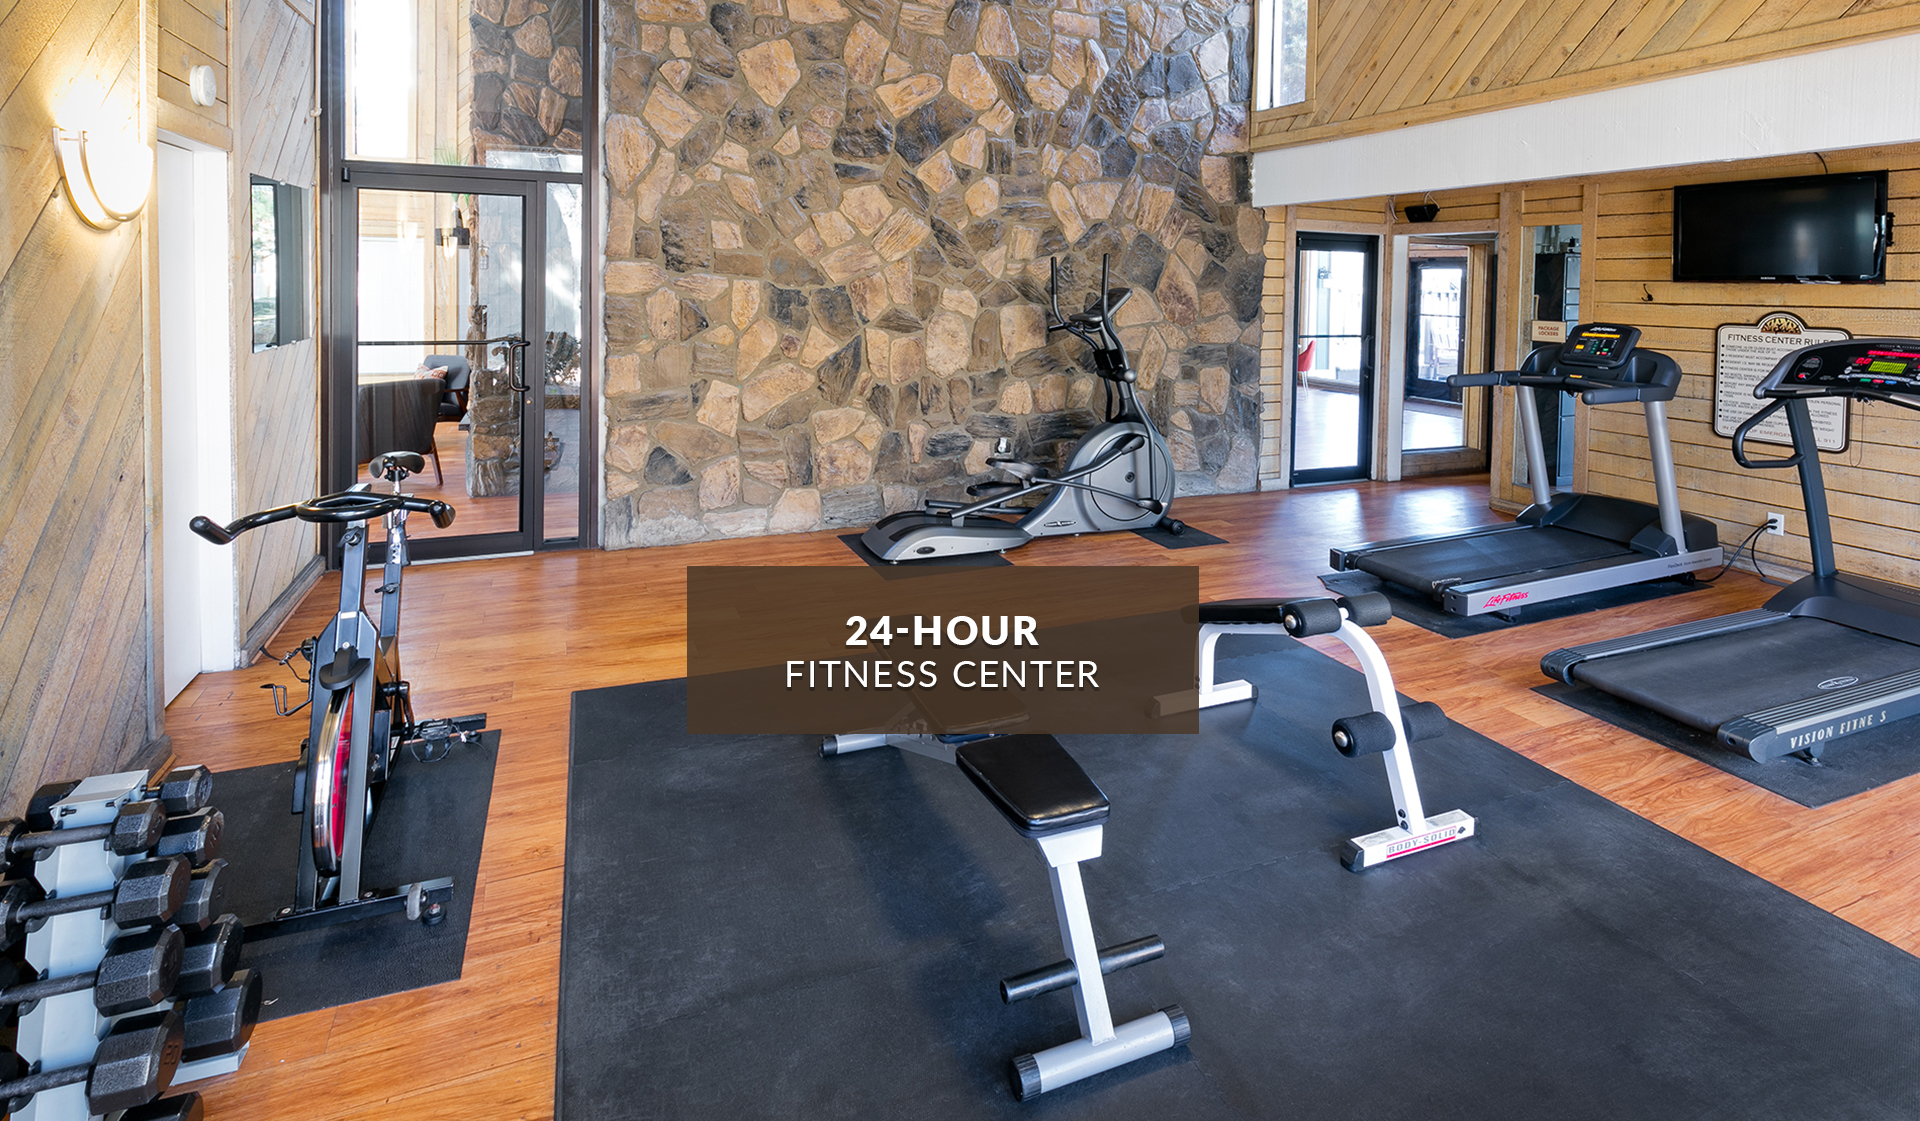 Creekside Apartments - fitness center with treadmills, bike, and weight lifting equipment - denver, CO